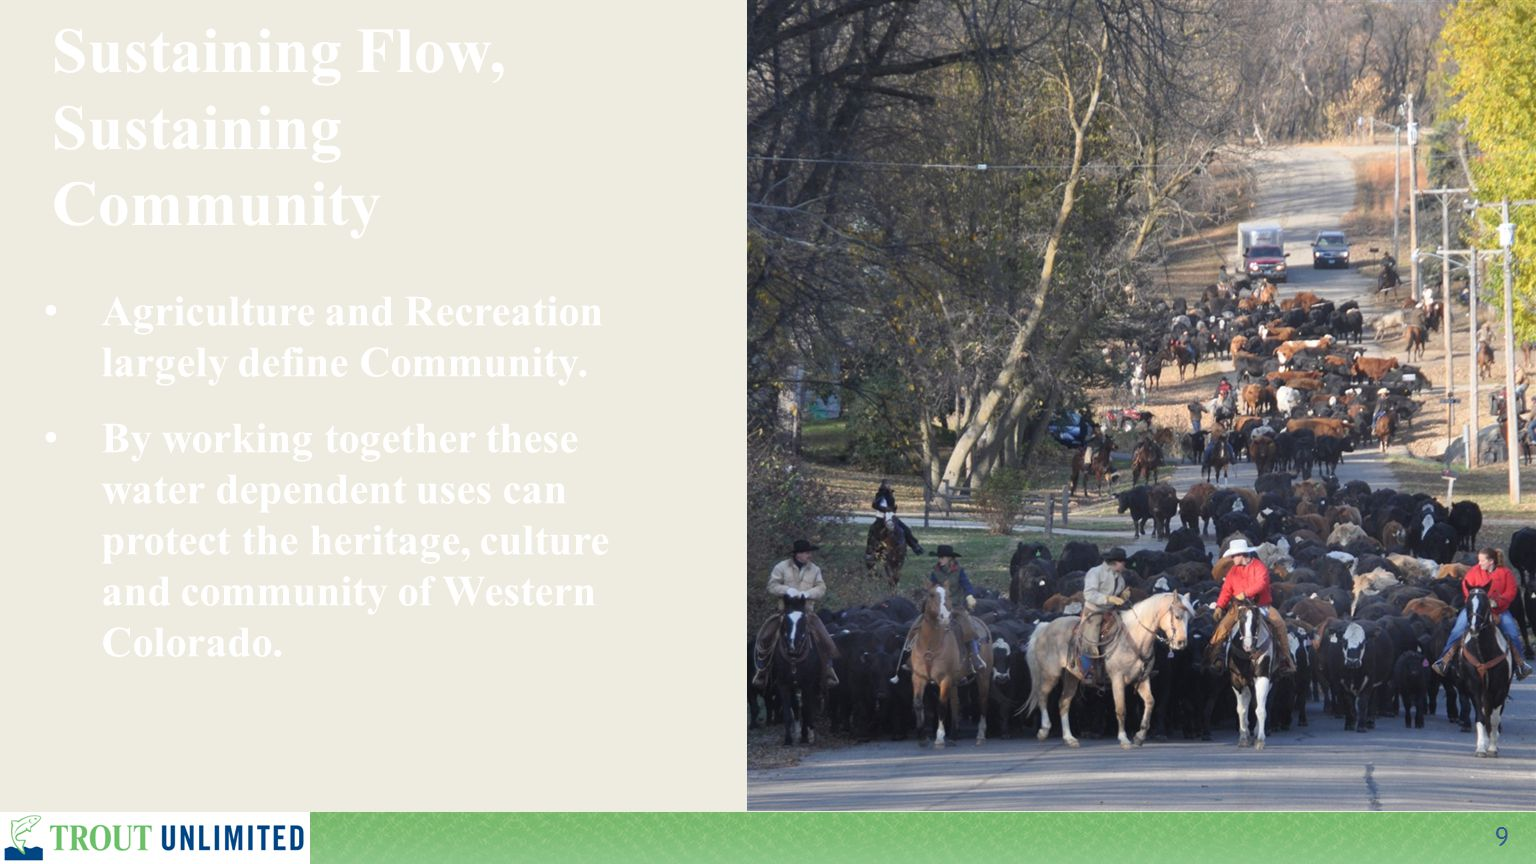 9 Sustaining Flow, Sustaining Community Agriculture and Recreation largely define Community.